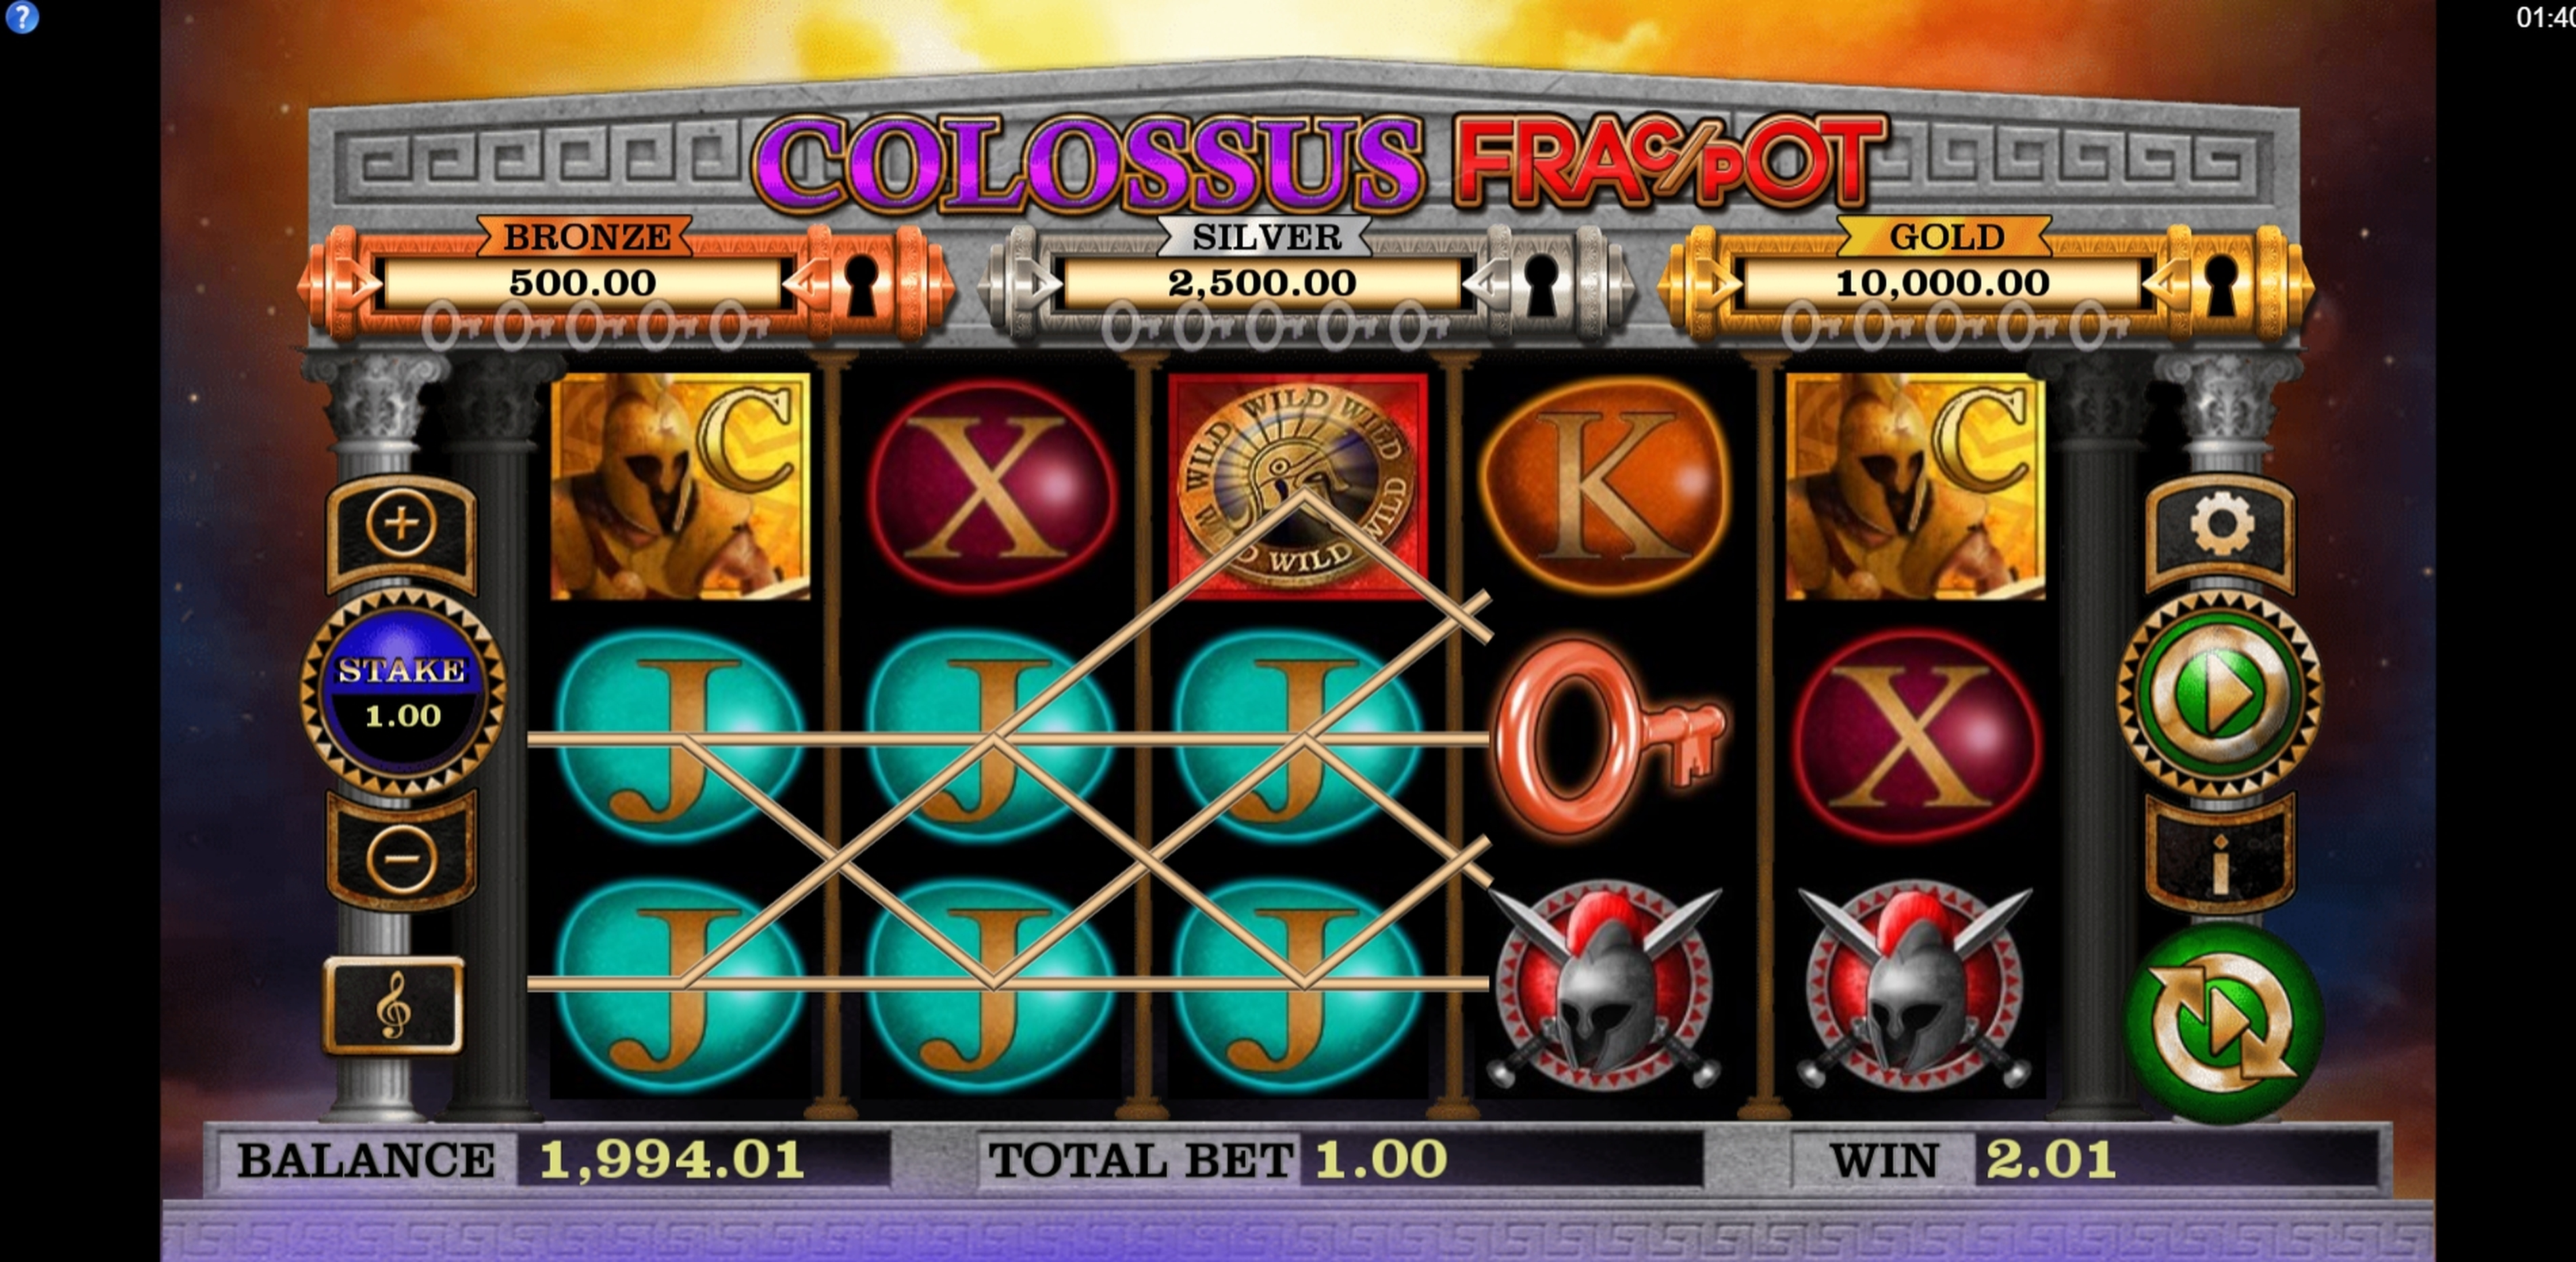 Win Money in Colossus Fracpot Free Slot Game by CORE Gaming